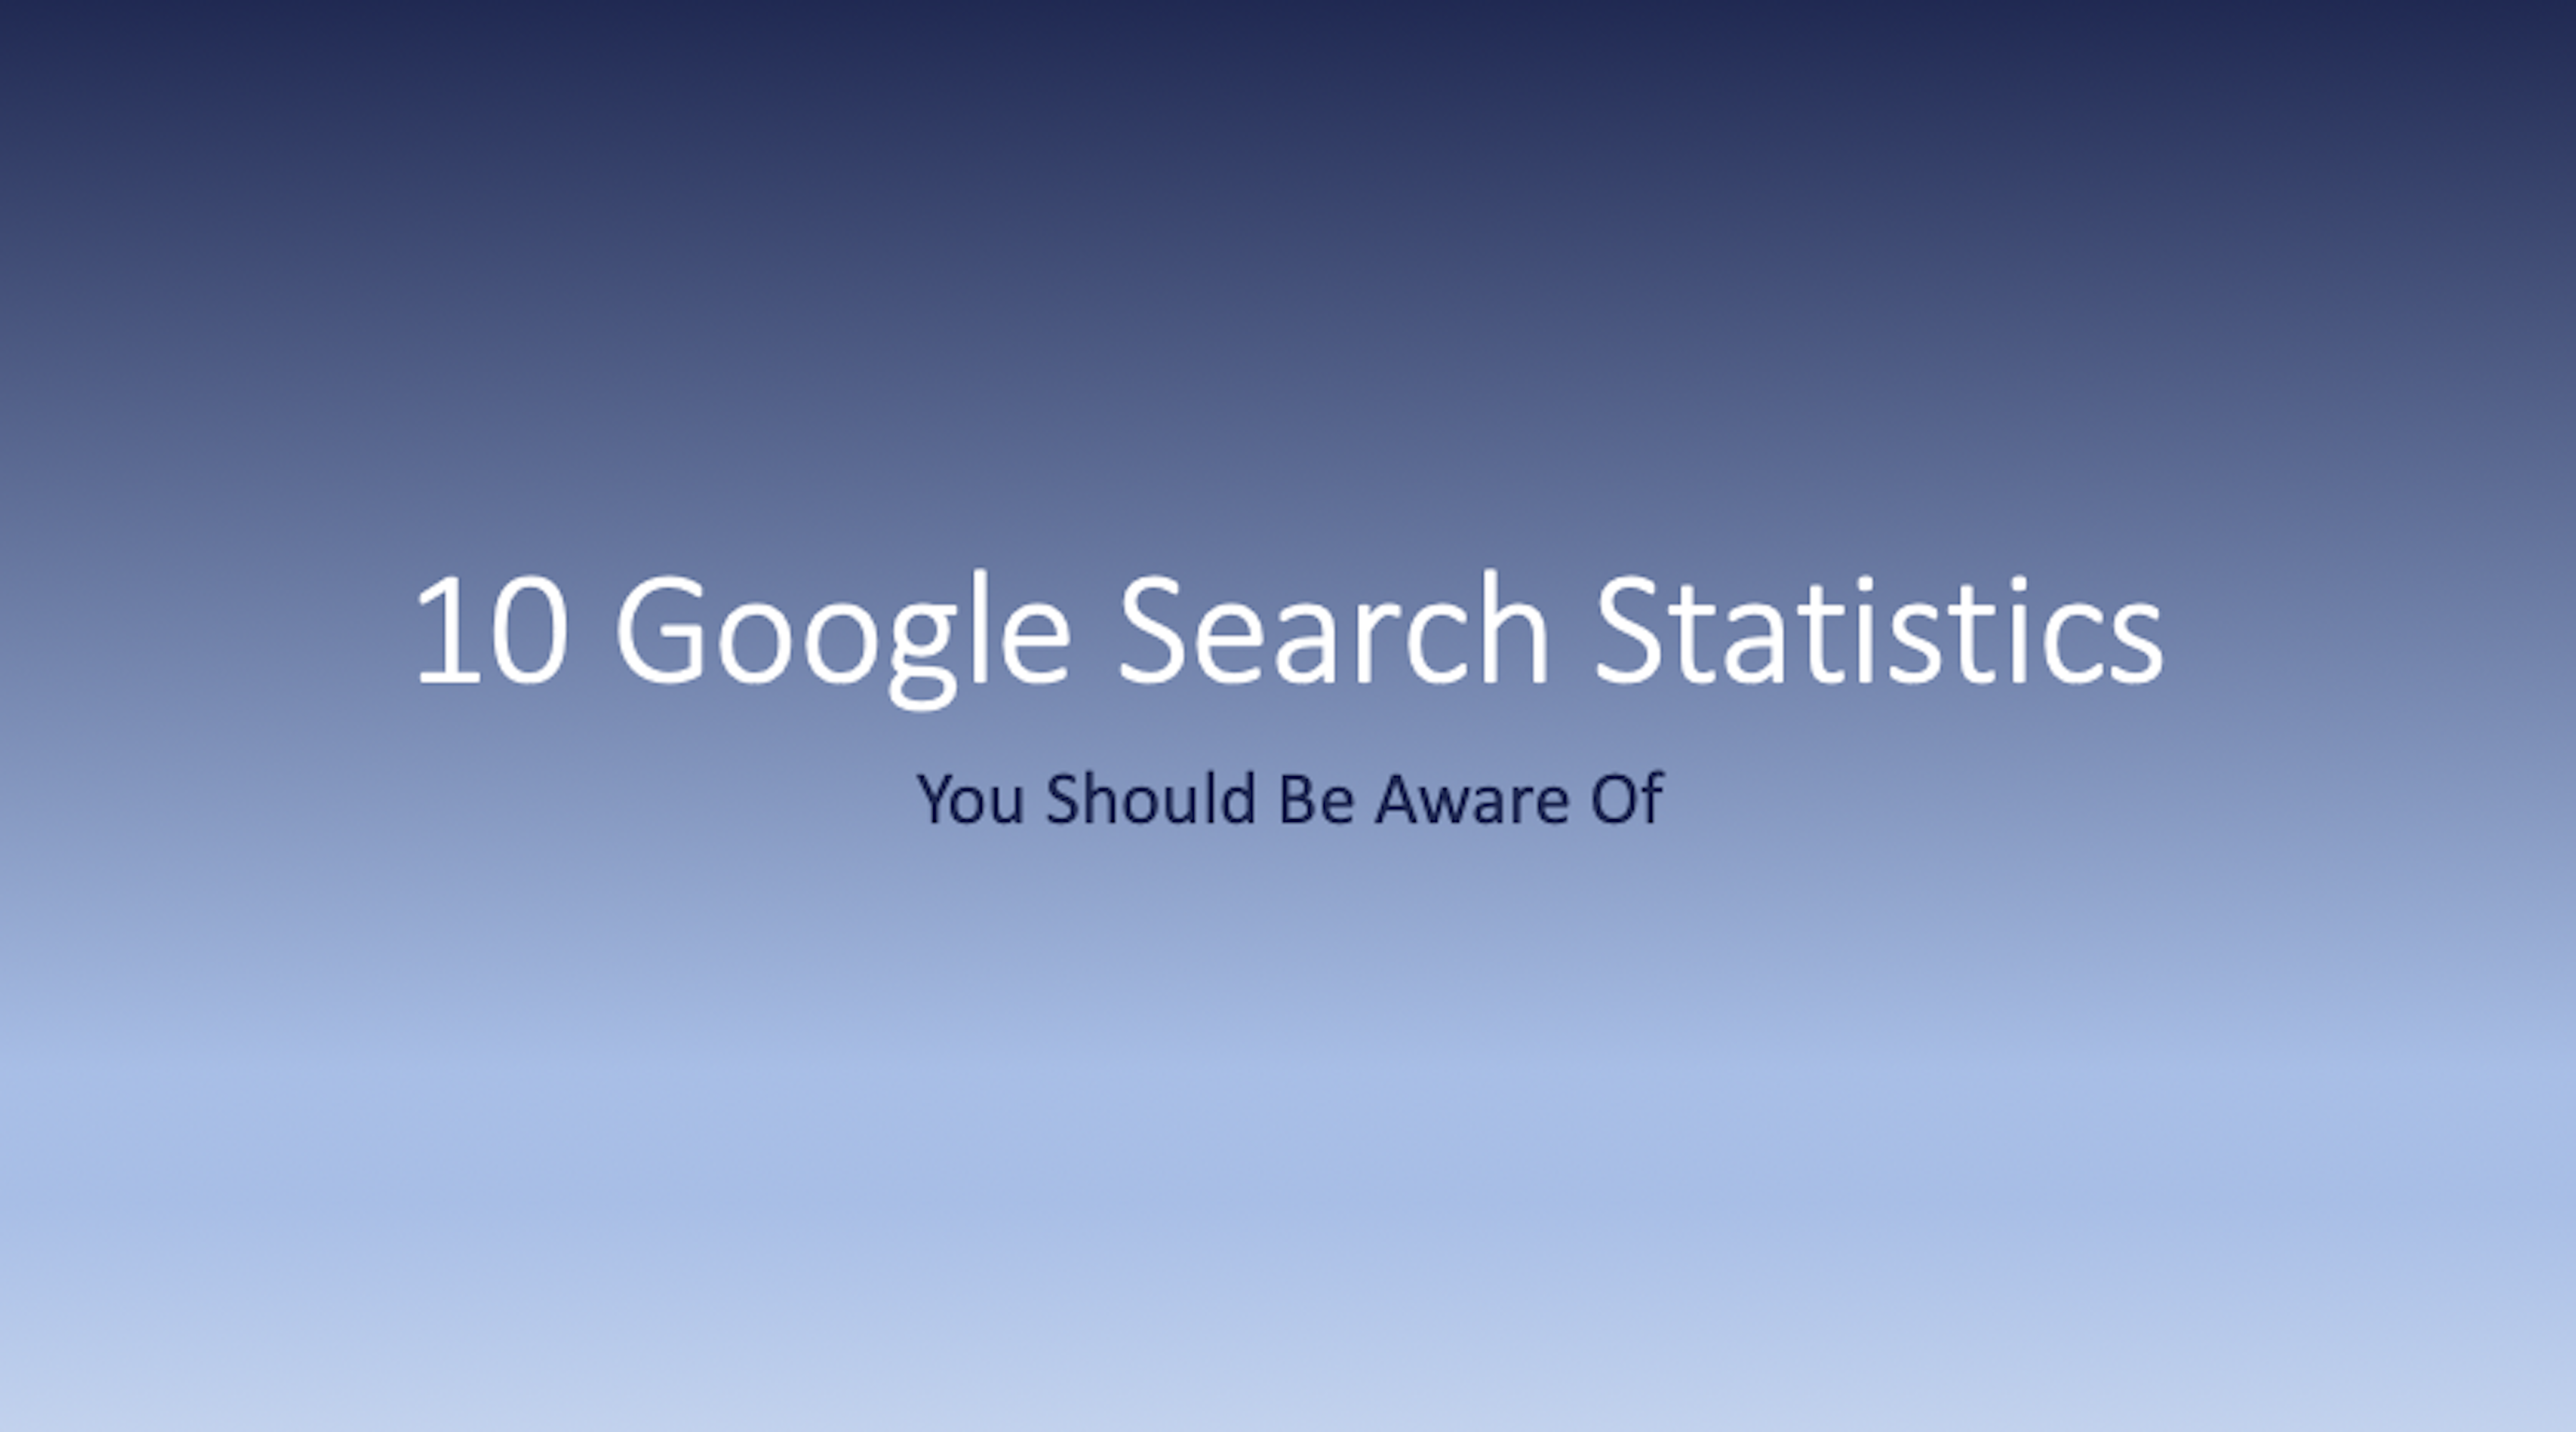 10 Google Search Statistics You Should Be Aware Of